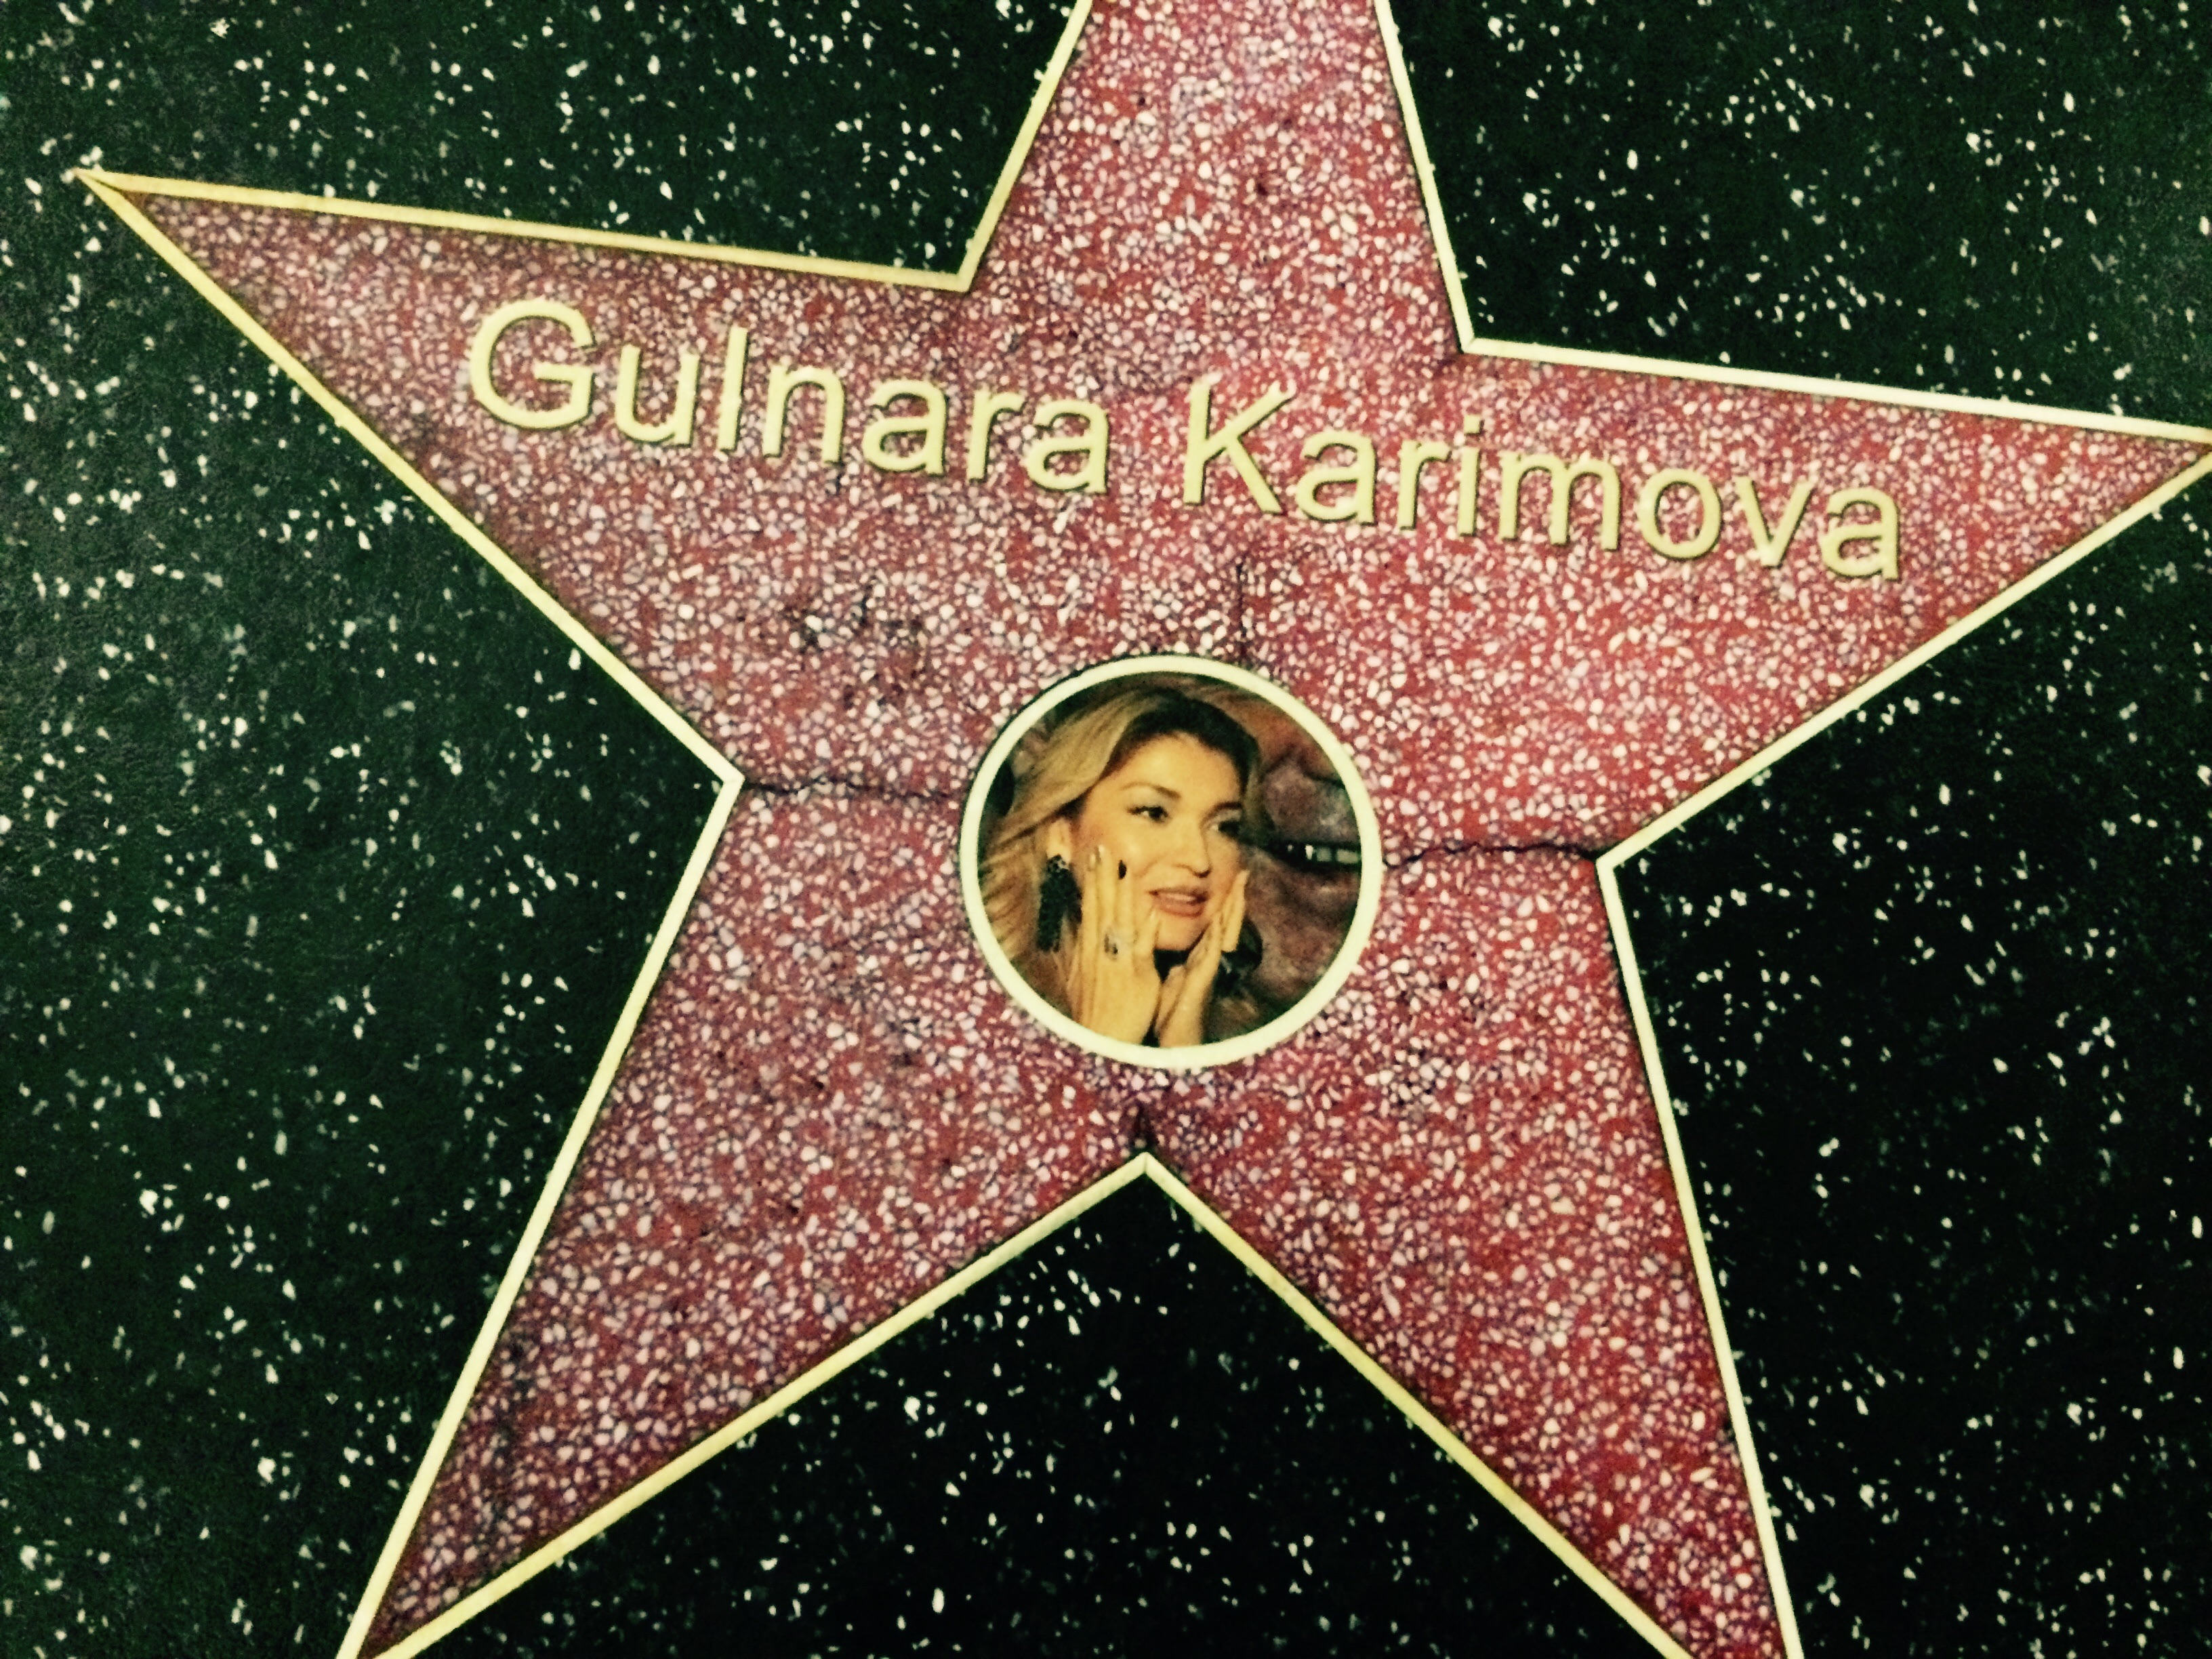 Appeal for justice in the return of Gulnara Karimova's ill-gotten assets